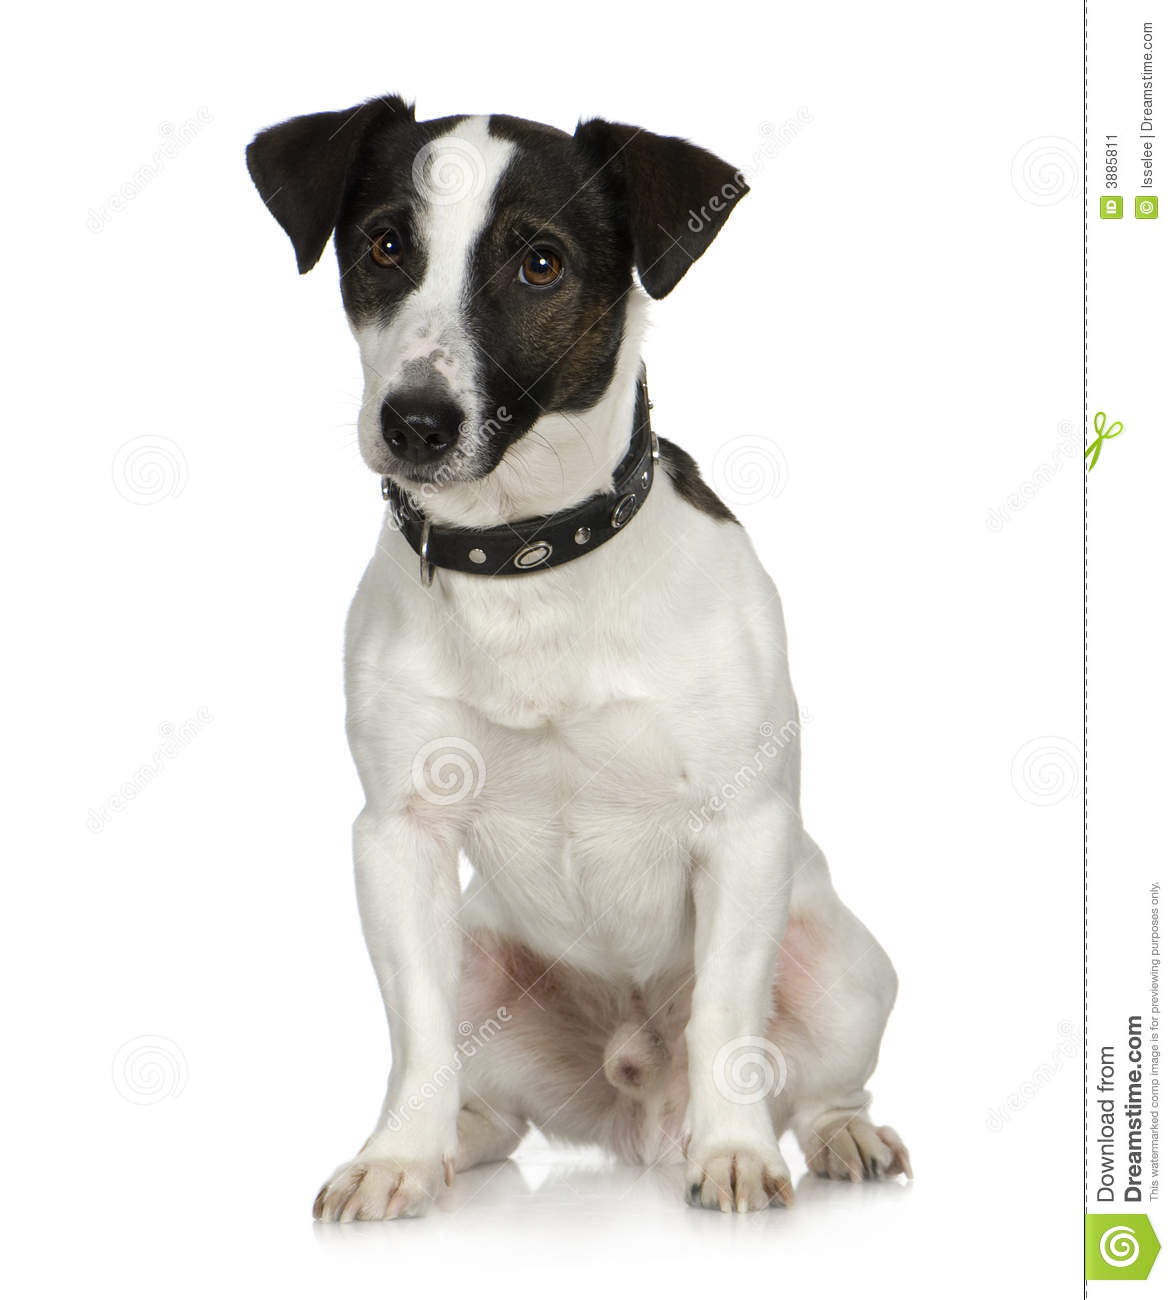 Jack russell (2 anni)